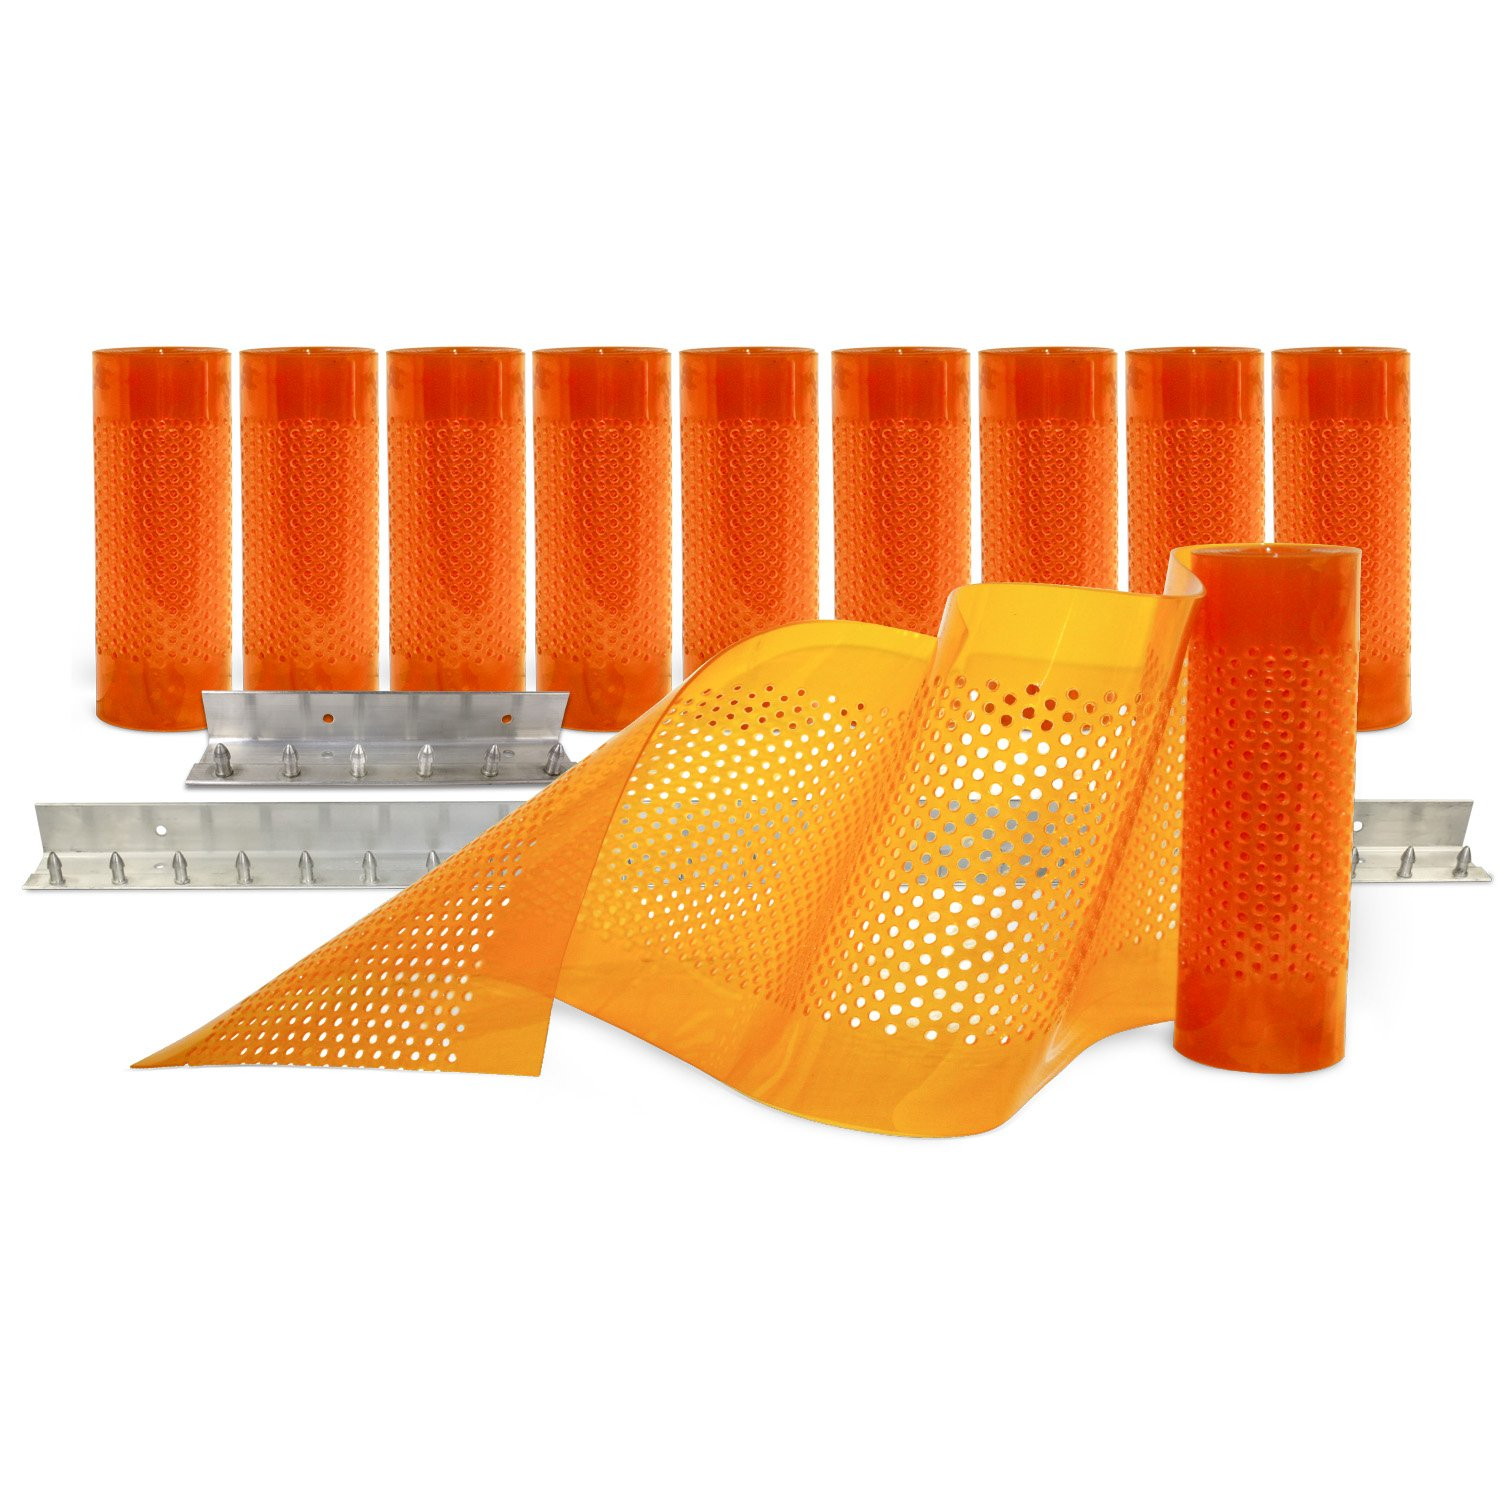 Aleco 443682 Clear-Flex II Standard AirStream Perforated PVC Strip Door Kit with MaxBullet Aluminum Mounting Hardware, 8'' Width x 84'' Height x 0.08'' Thick, Amber